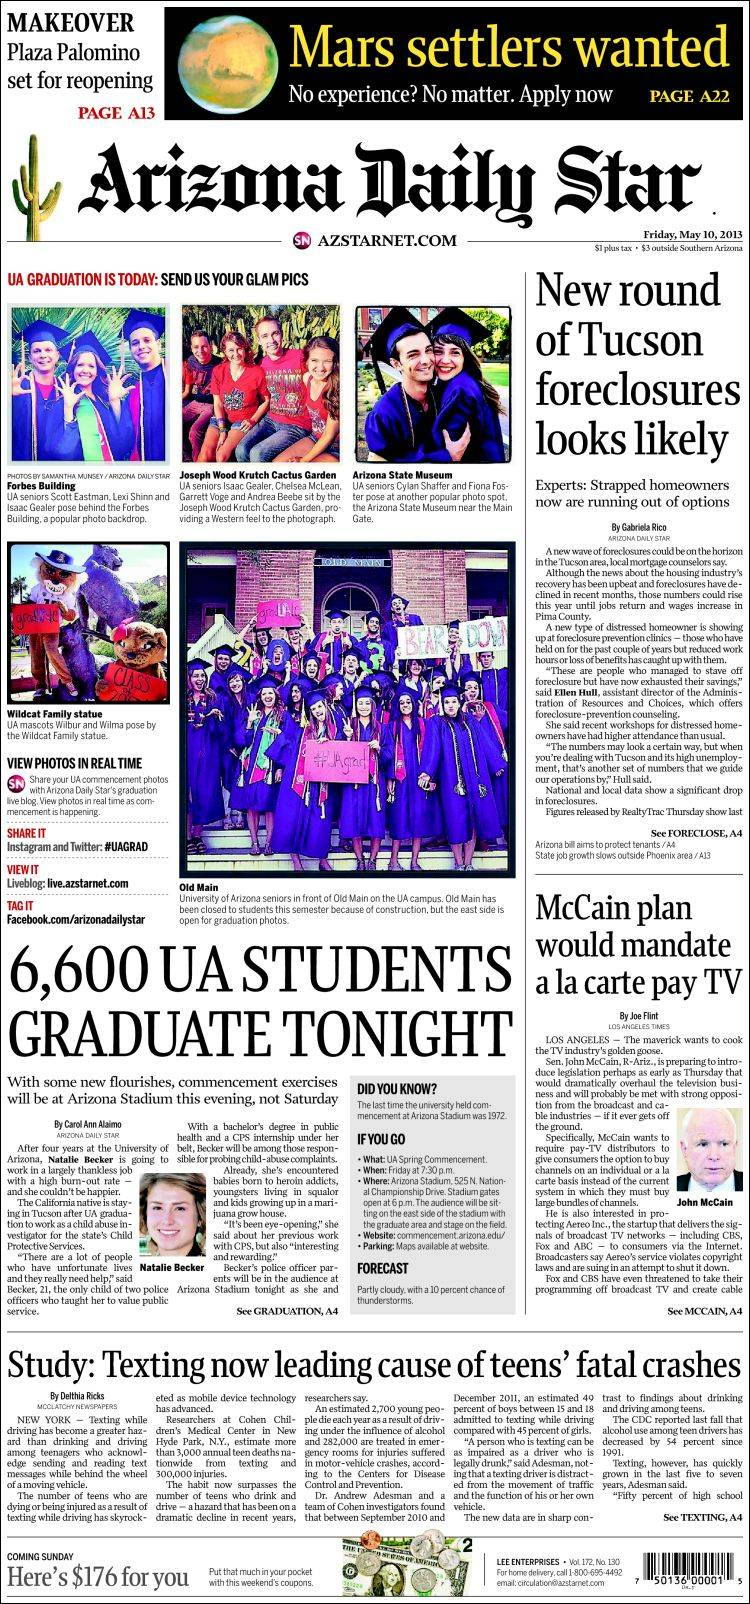 Arizona_daily_star-2013-05-10